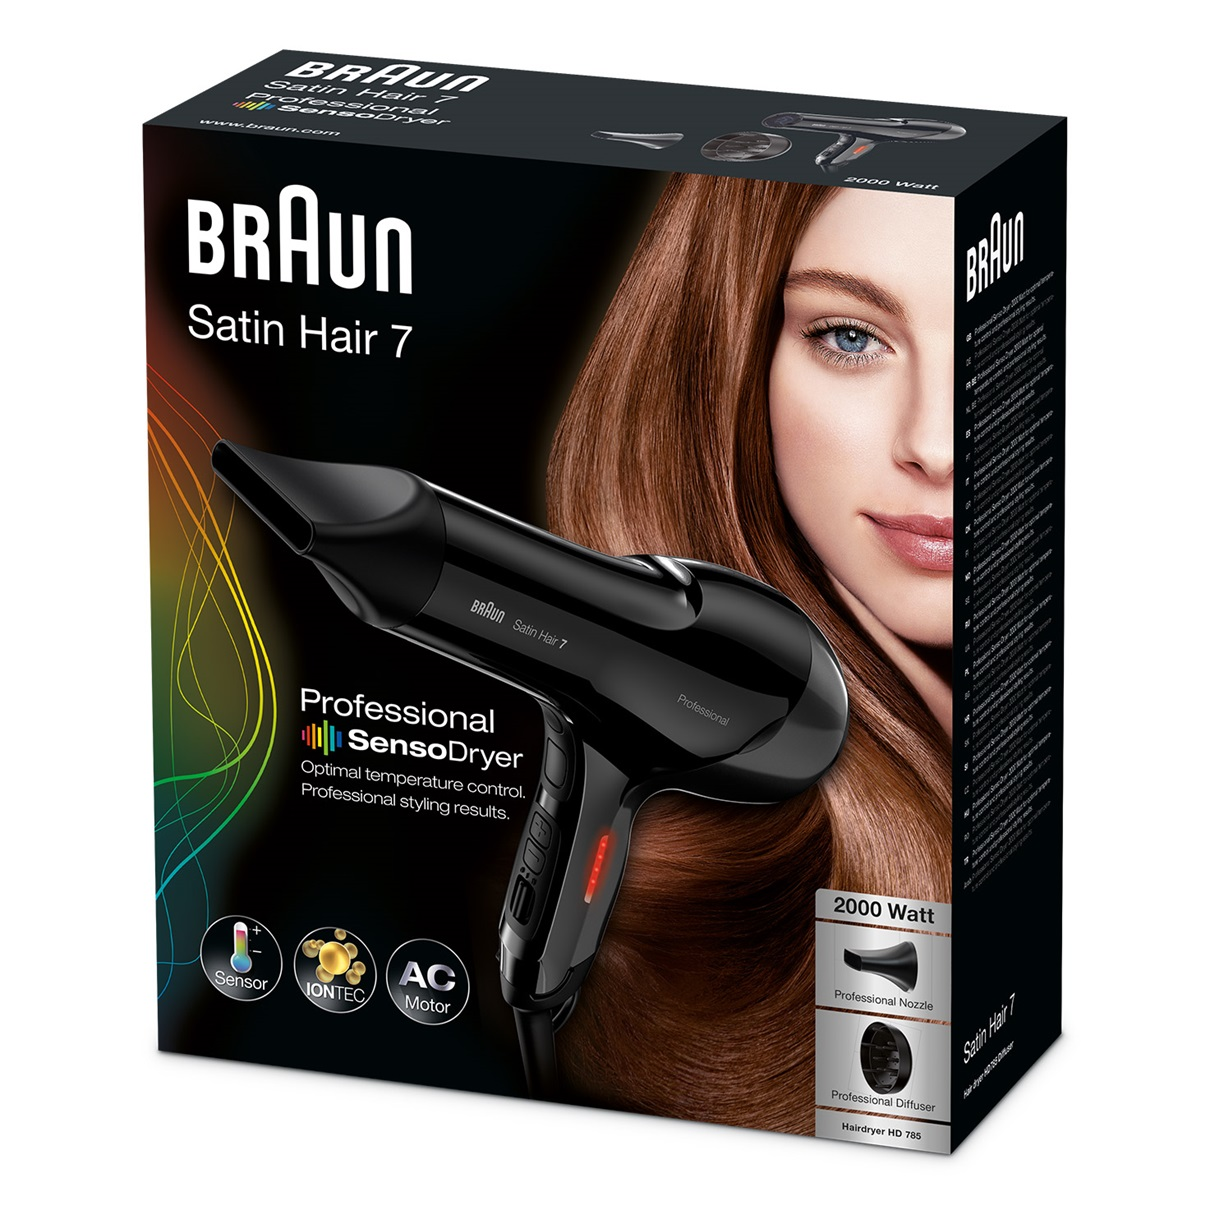 Braun Satin Hair 7 HD785 professional SensoDryer with IONTEC and diffuser - packaging